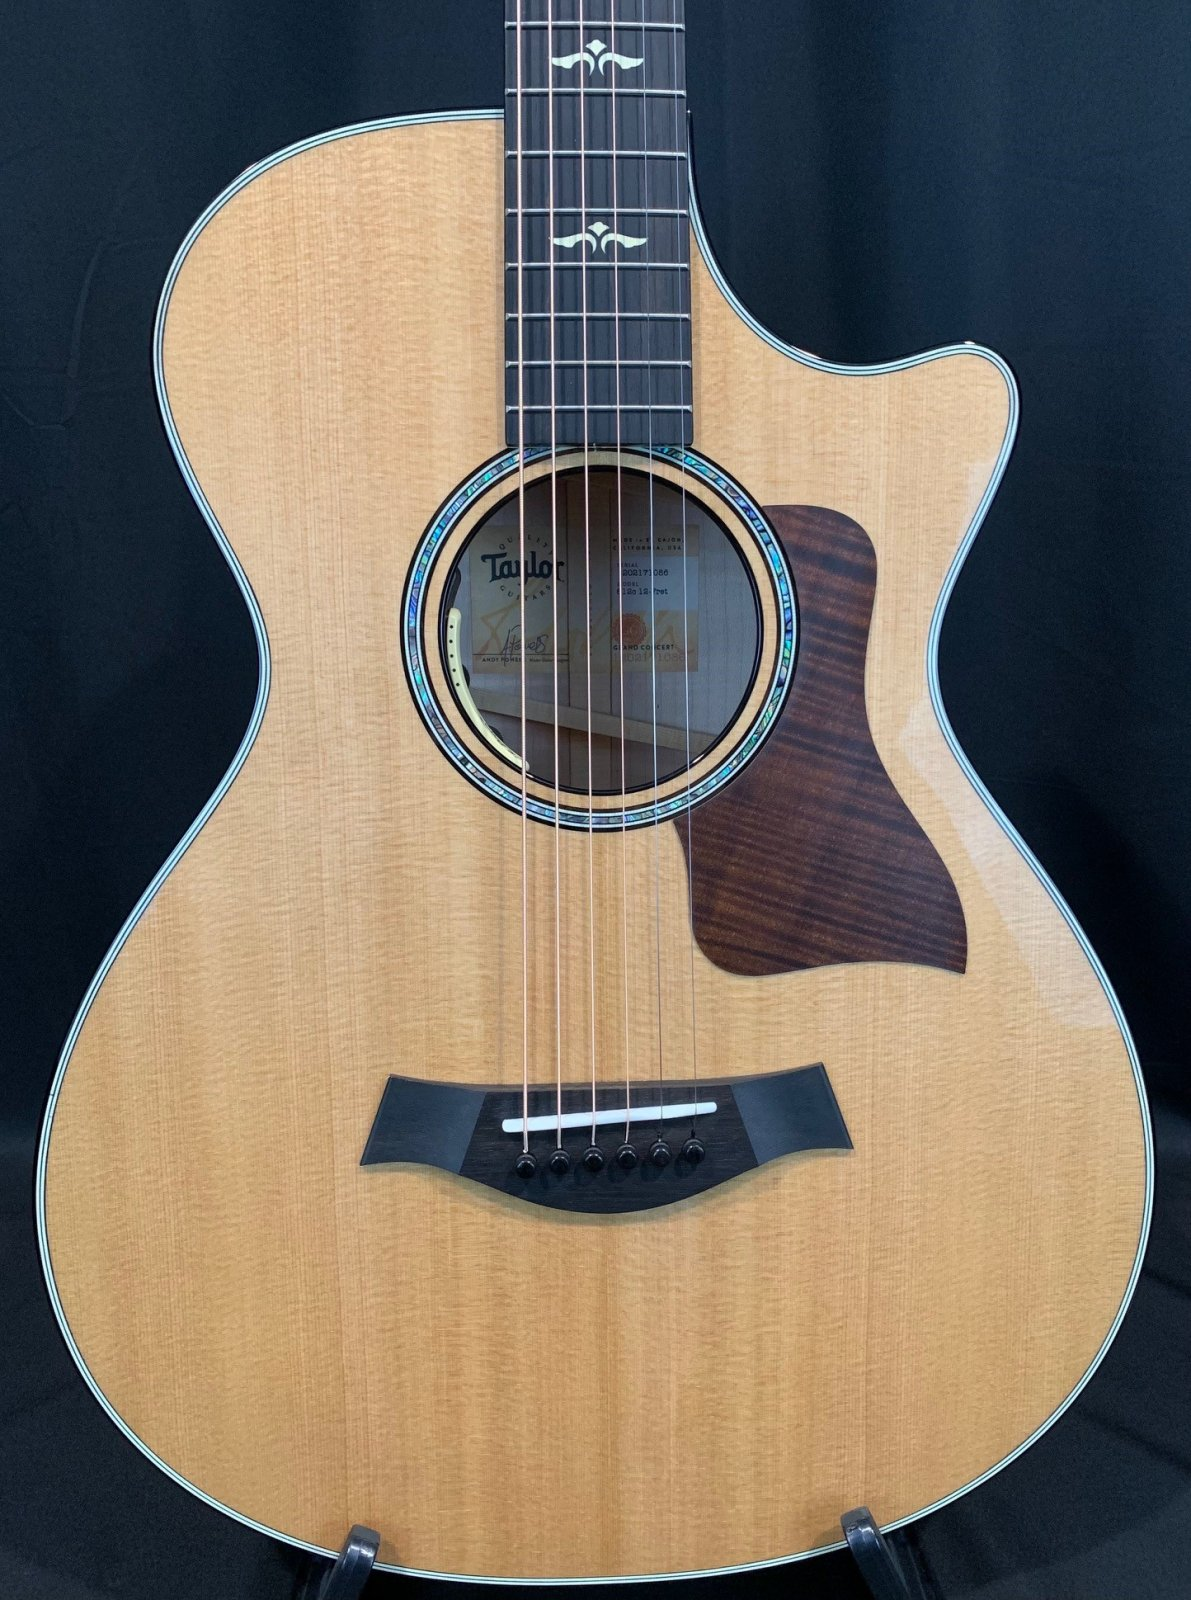 Taylor 612ce 12 fret with LR Baggs Anthem Installed Acoustic Electric Guitar